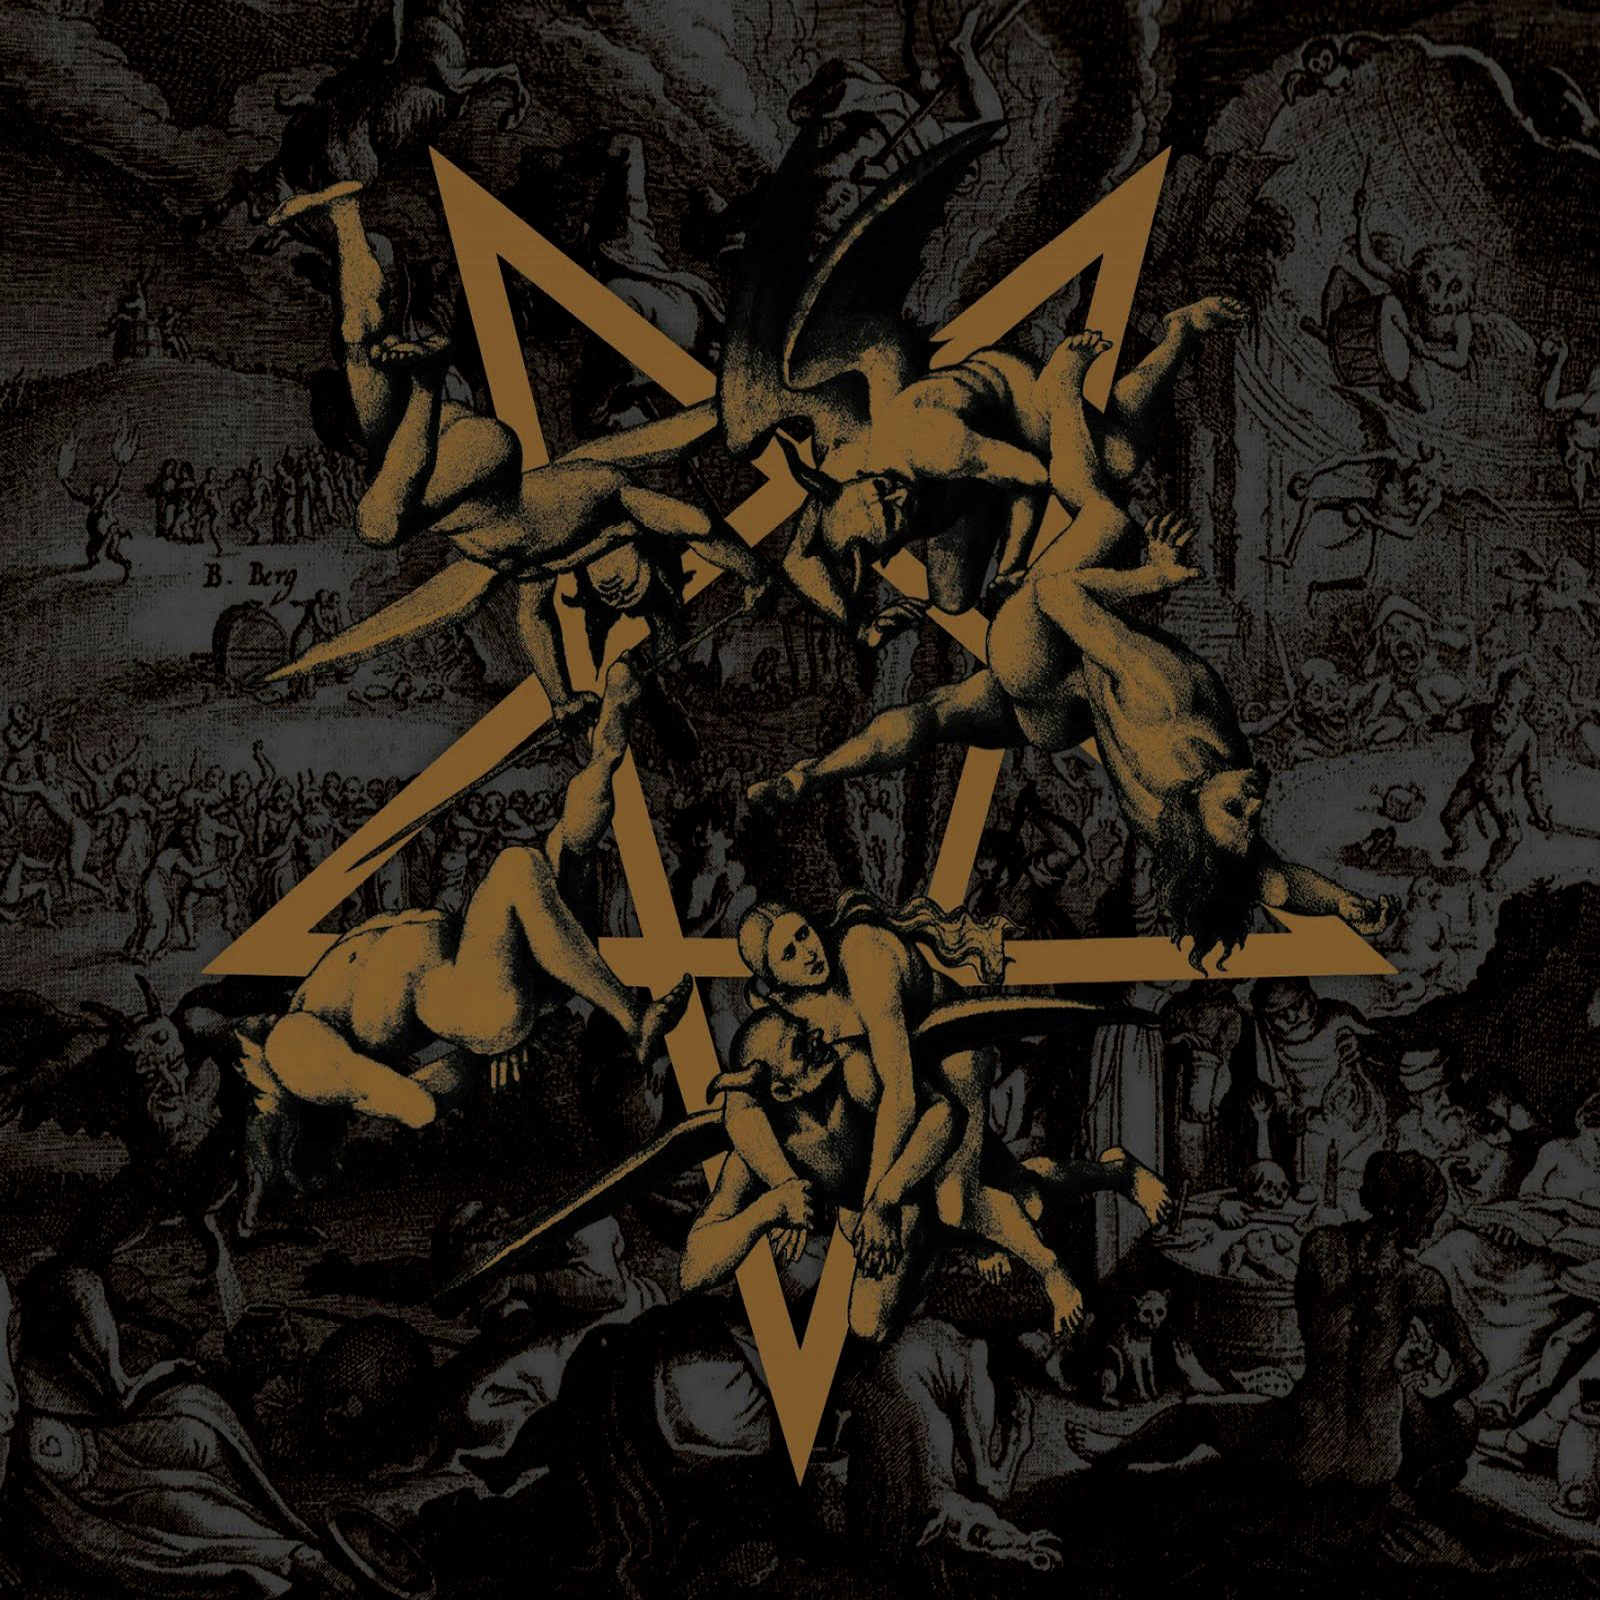 Review for Abigor - Four Keys to a Foul Reich (Songs of Pestilence, Darkness and Death)